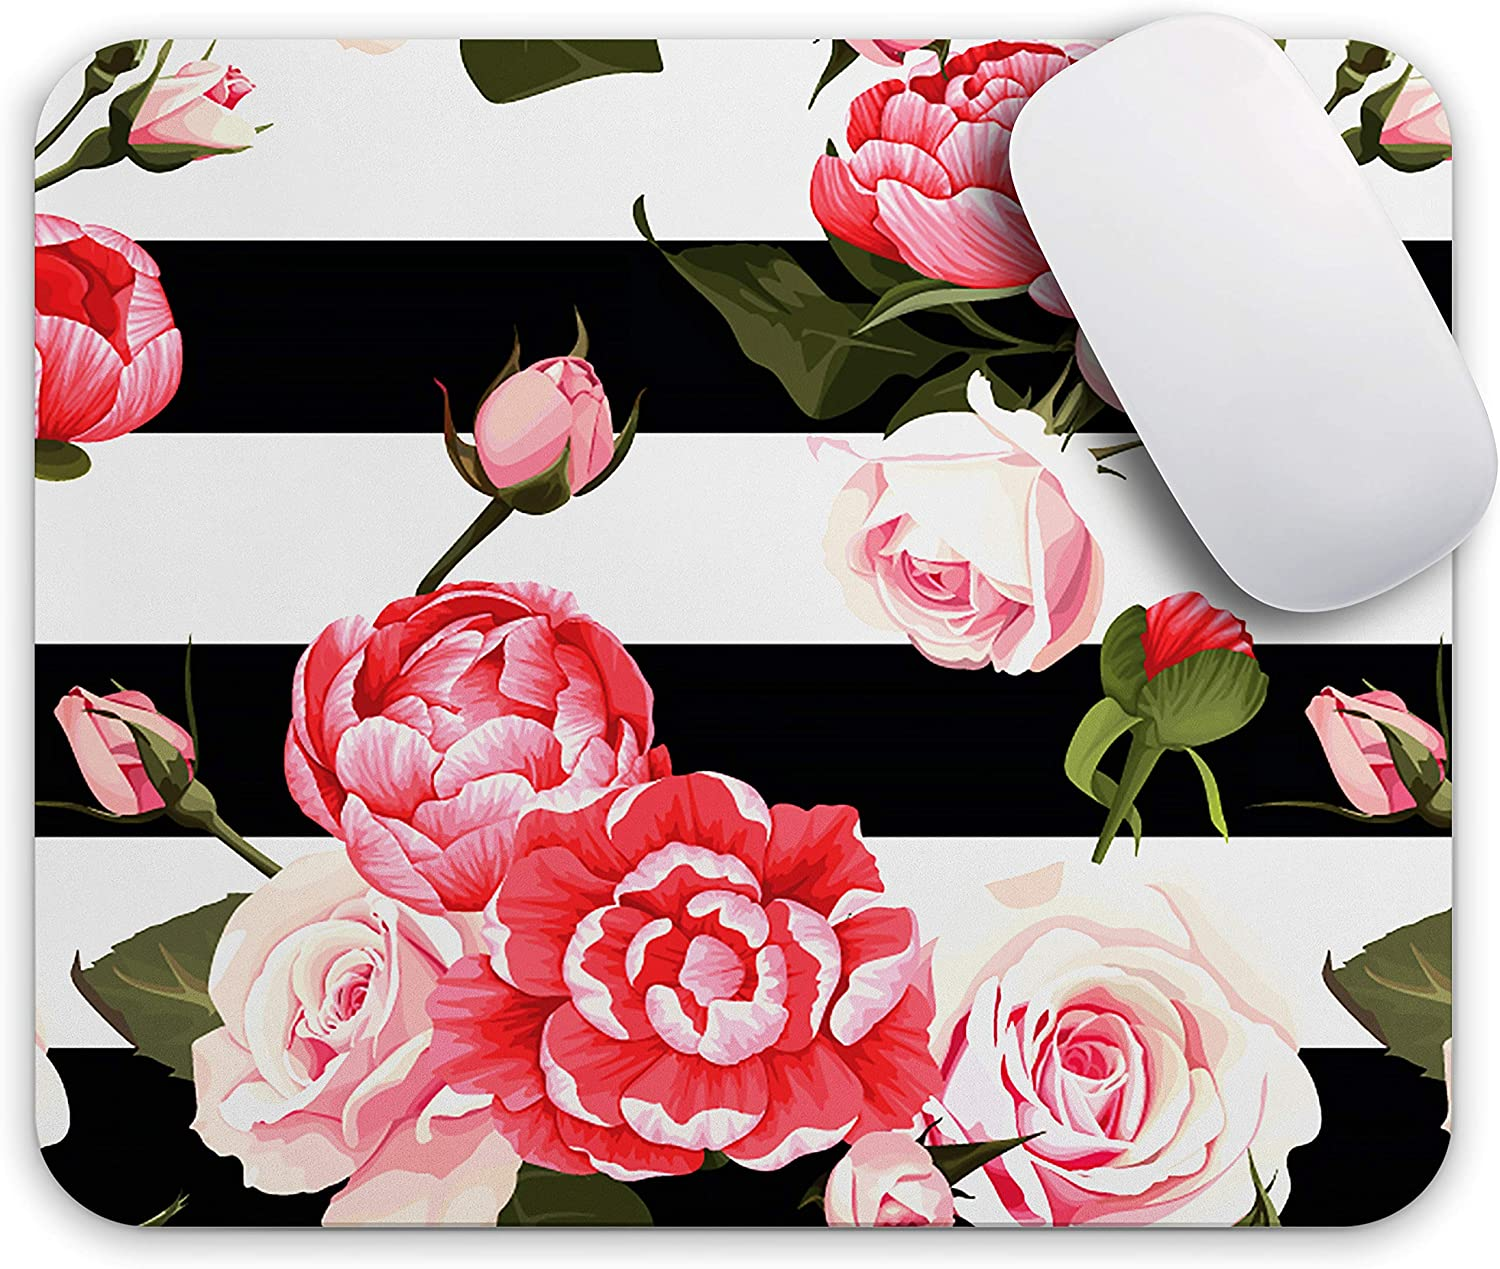 Oriday Gaming Mouse Pad Custom, Inspirational and Motivational Design for Women (Marine Rose)